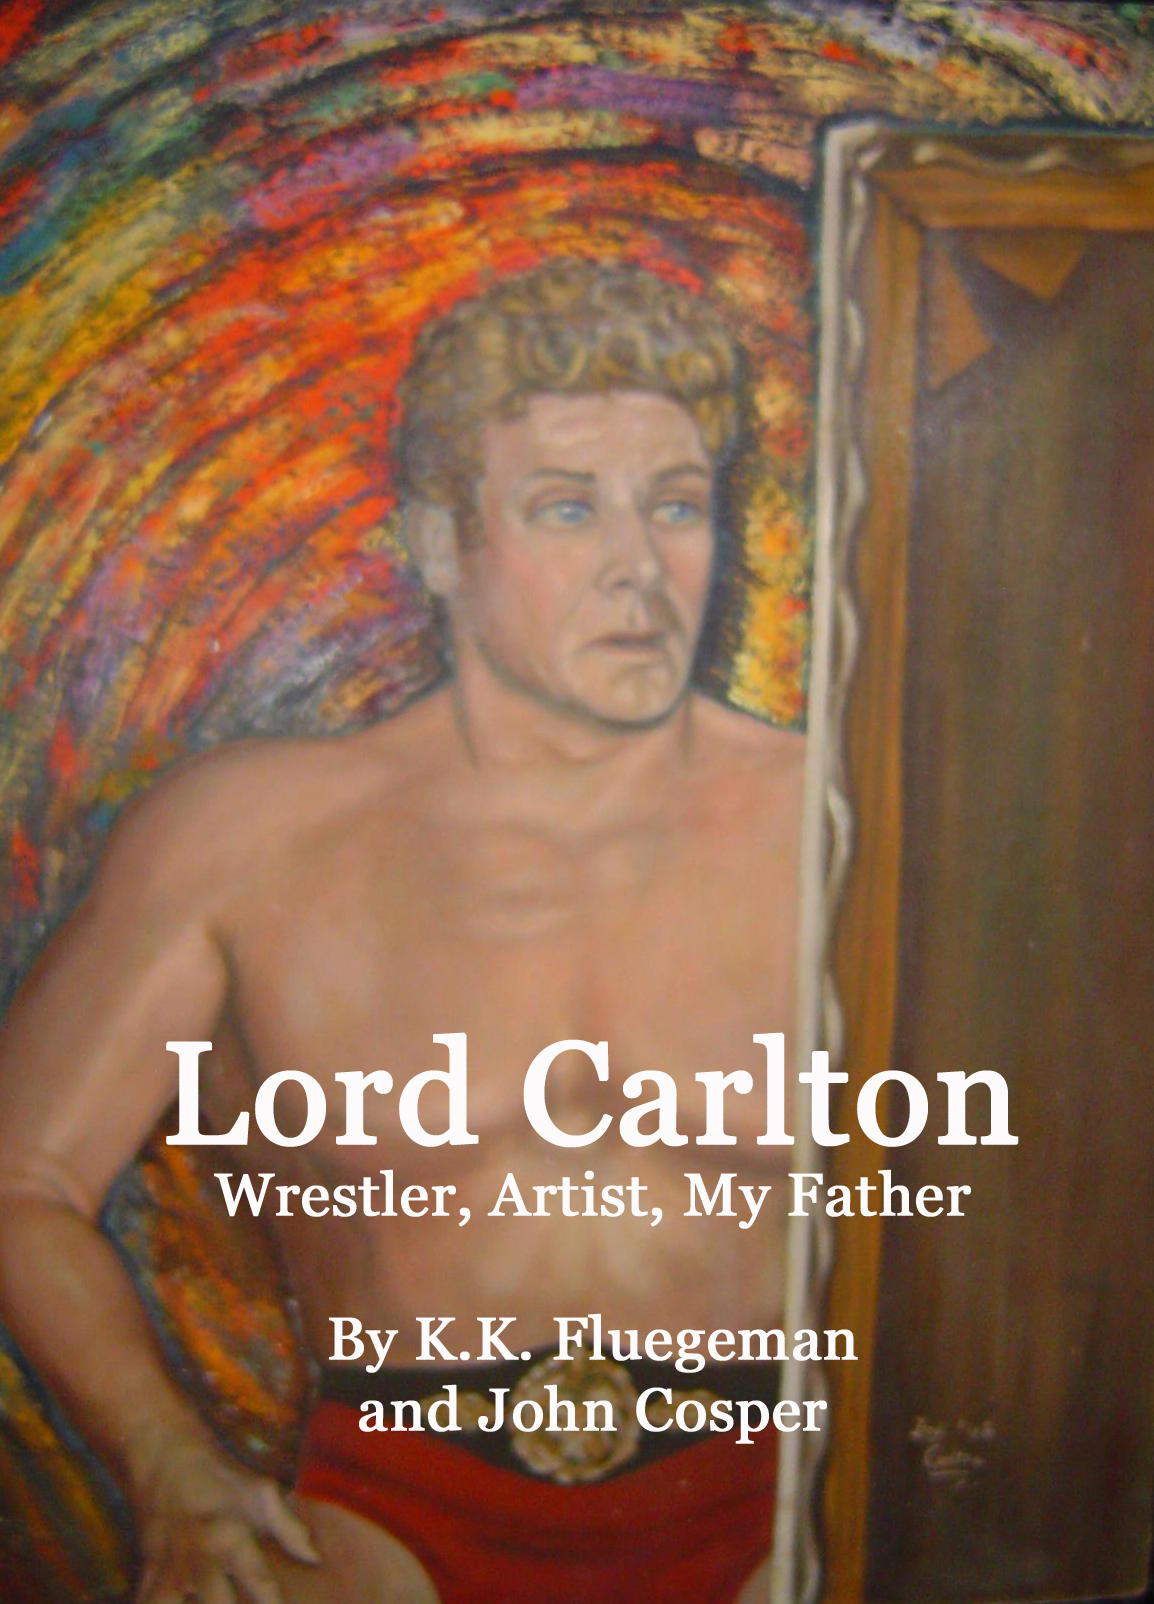 lord carlton cover-3